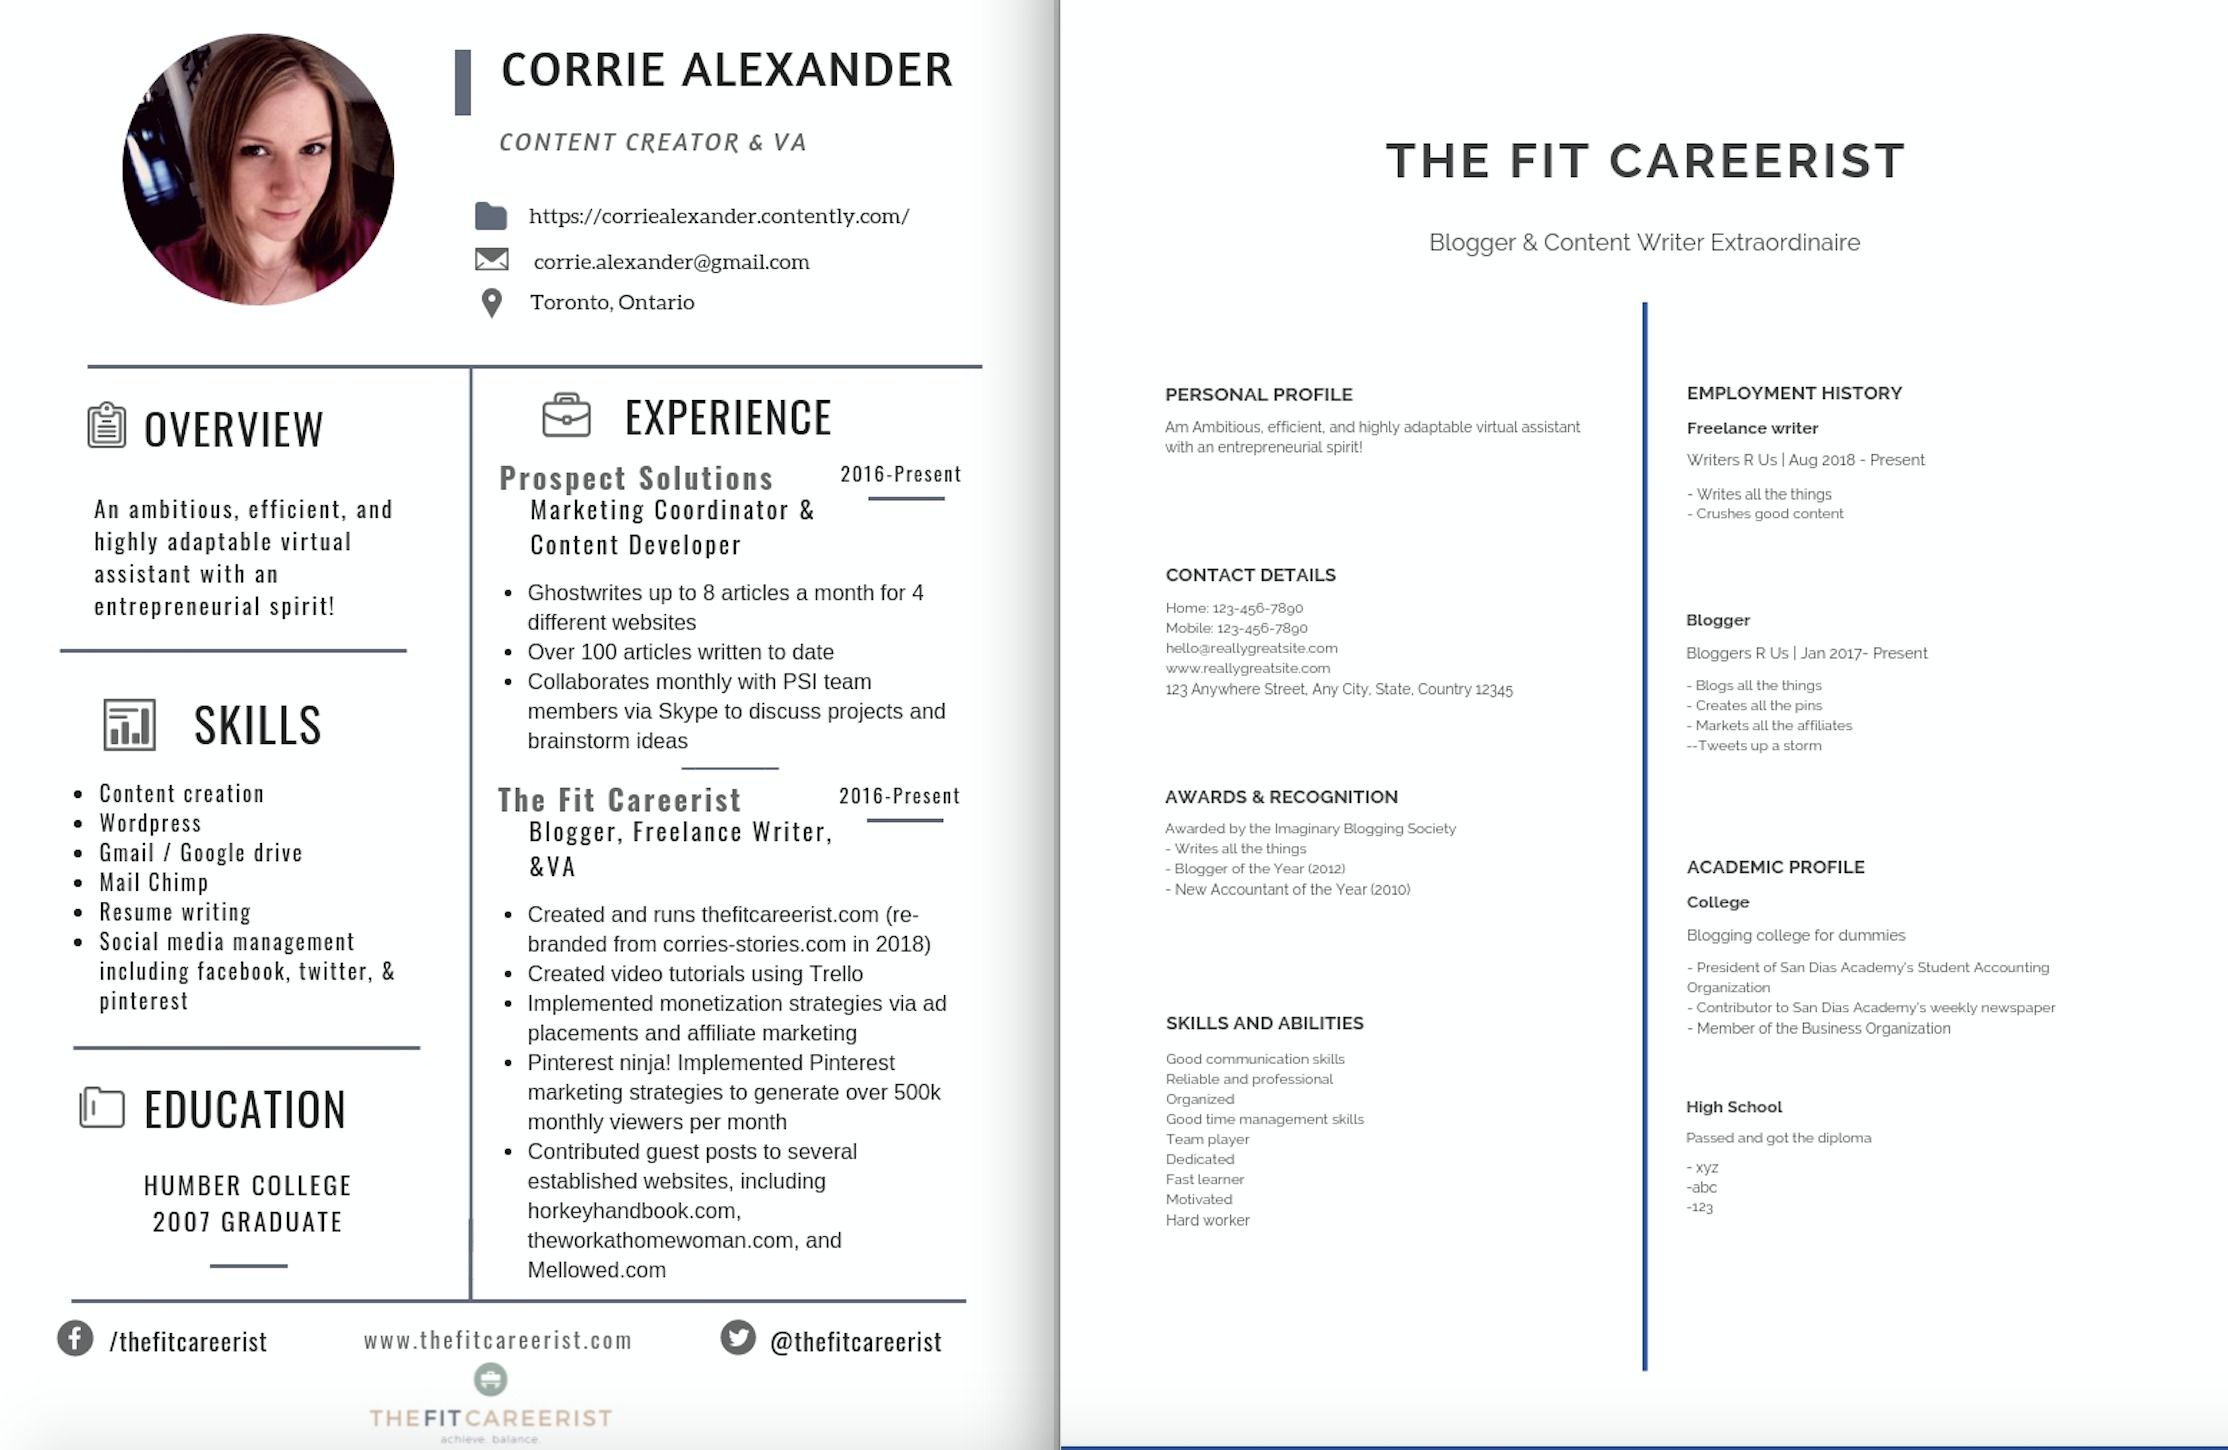 11 Resume Tips to Keep Your Application From Getting Passed Over - Resume tips, Best resume format, Resume, Resume profile, Resume template free, Writing tips - If you want to make it to that coveted shortlisted pile, here are the top 11 resume tips to keep your C V  from your prospective employer's deleted folder